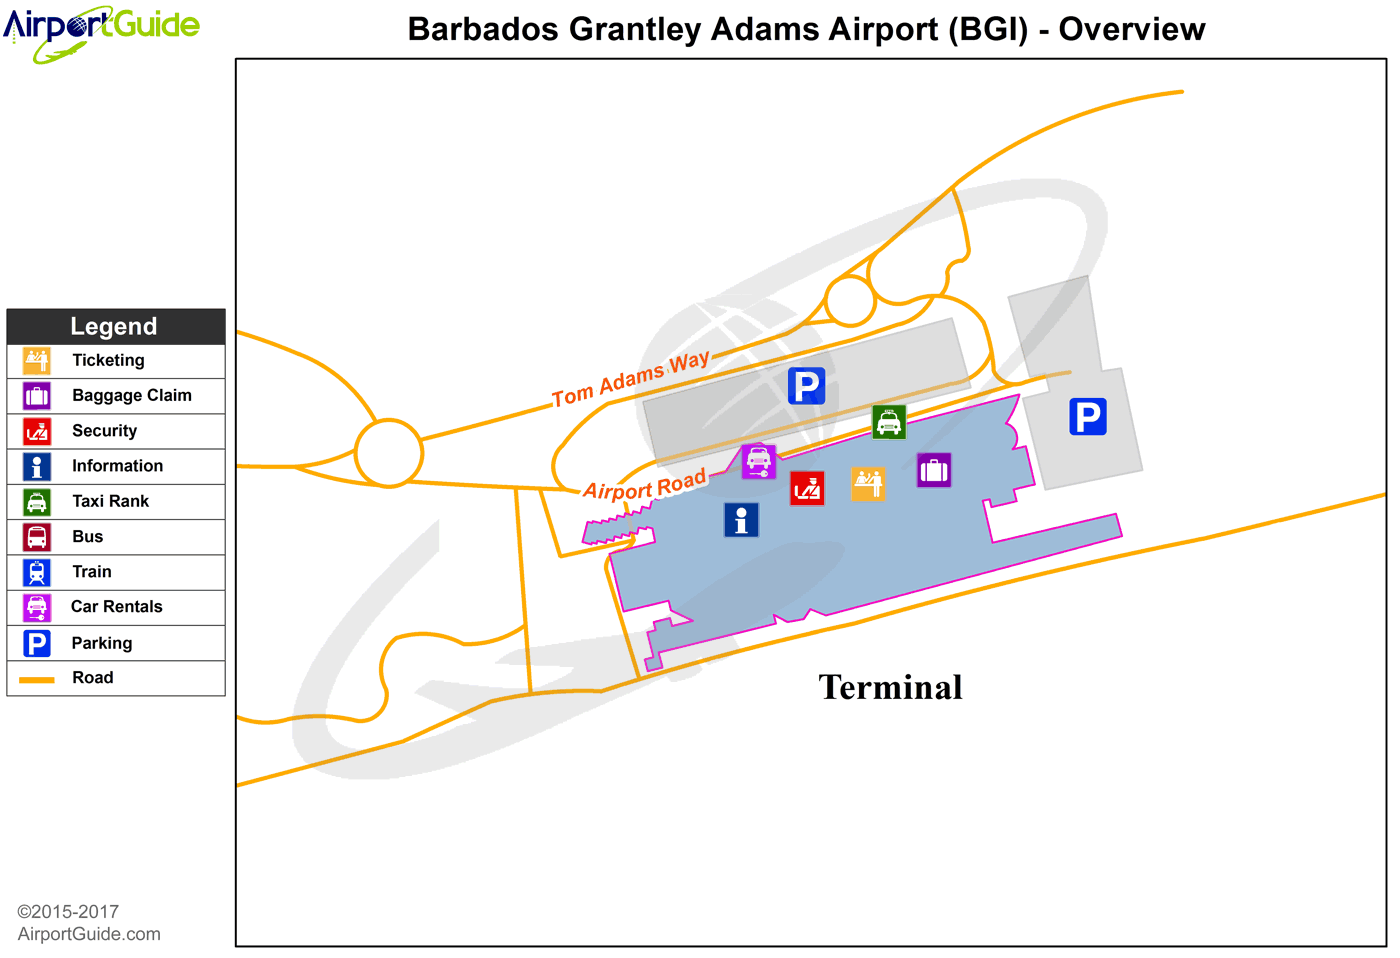 Bridgetown - Sir Grantley Adams International (BGI) Airport Terminal Map - Overview